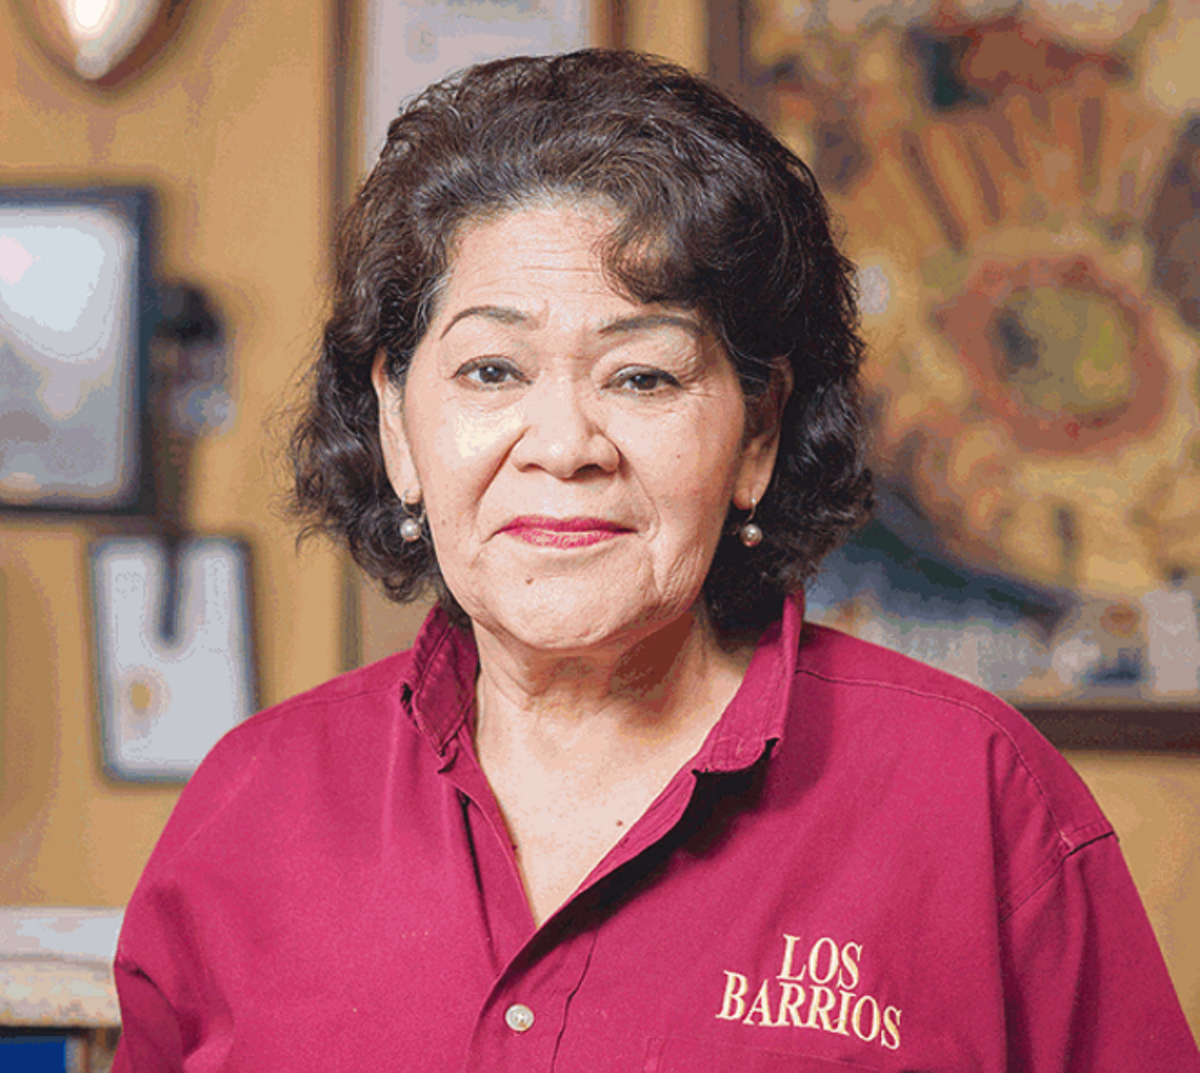 Marquez has been greeting regulars since 1975.